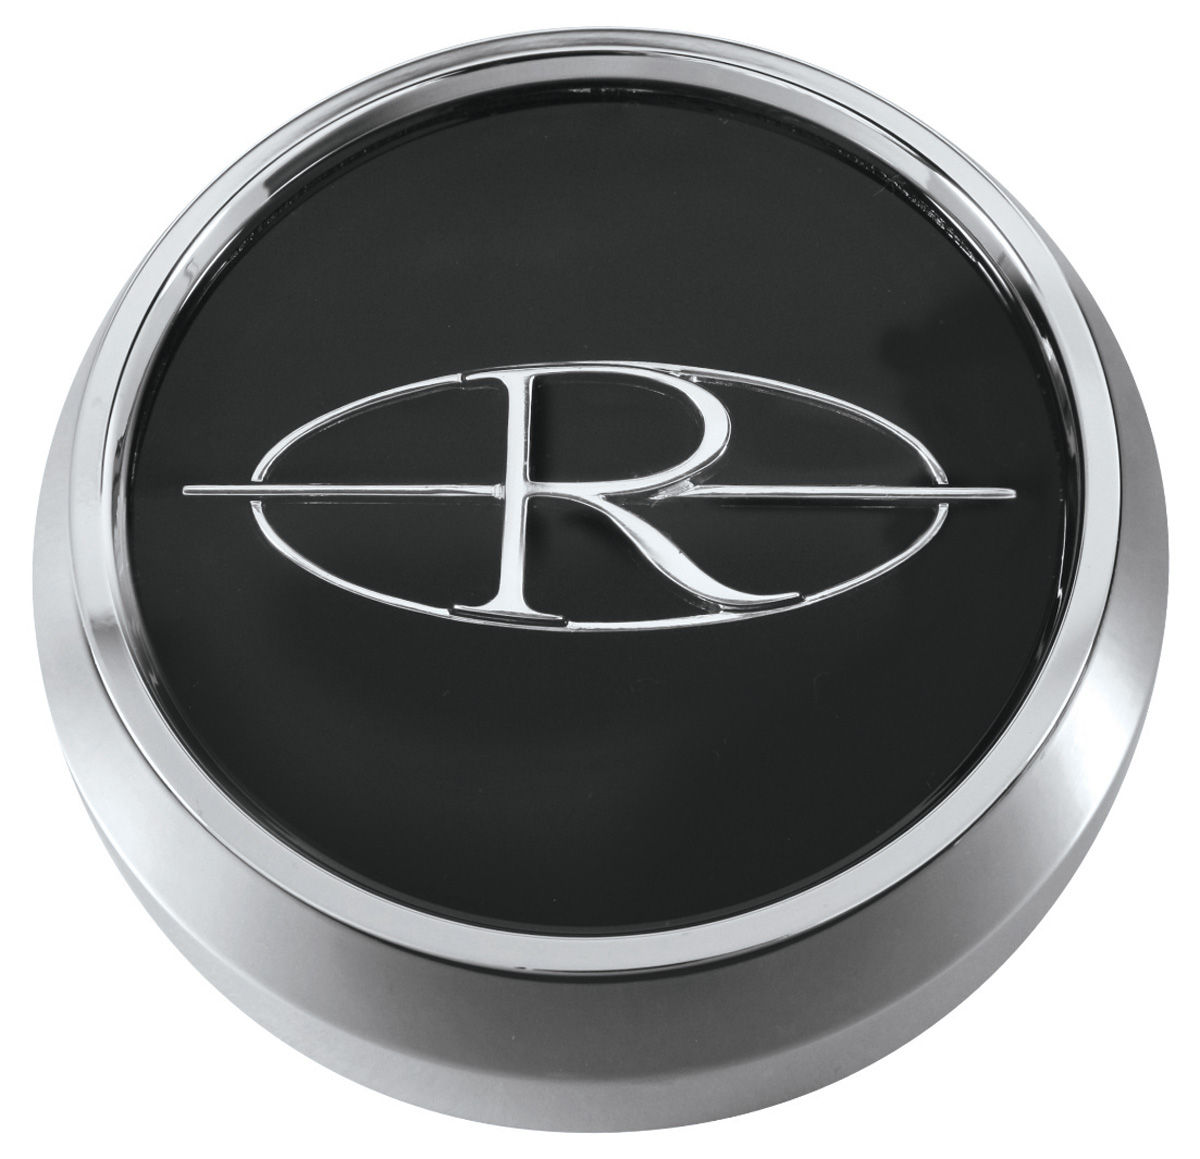 "Riviera Wheel Center Cap 2"", black Fits 1964-65 Riviera ..."